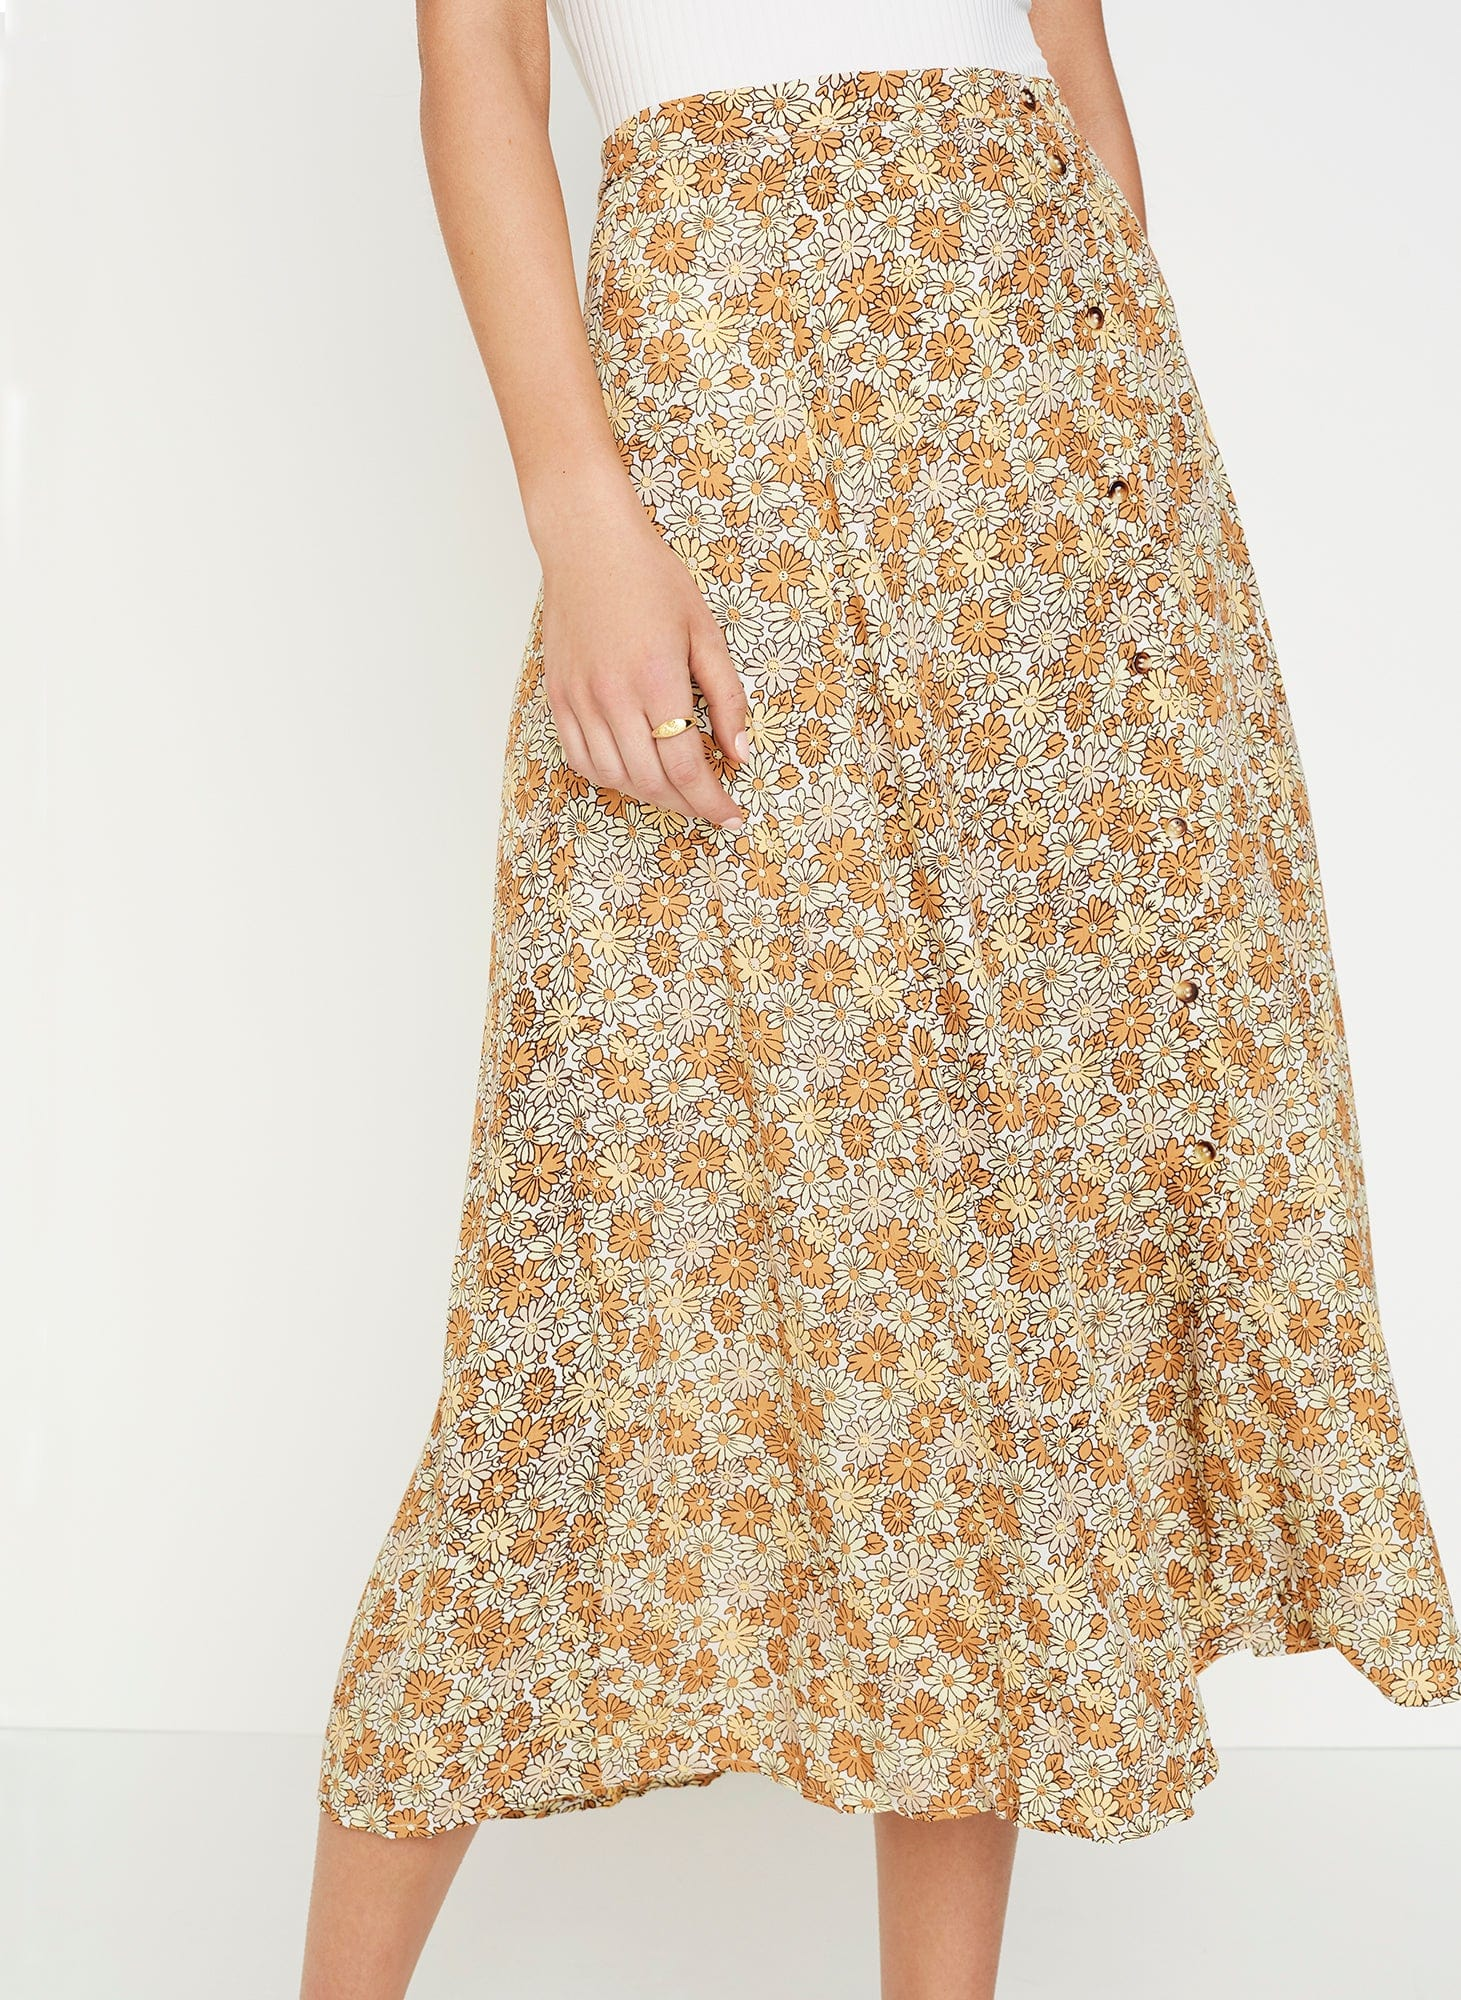 8febd37b7a ZOELLA FLORAL PRINT - PEACH - LE JEAN SKIRT | FAITHFULL THE BRAND |  INTERNATIONAL .